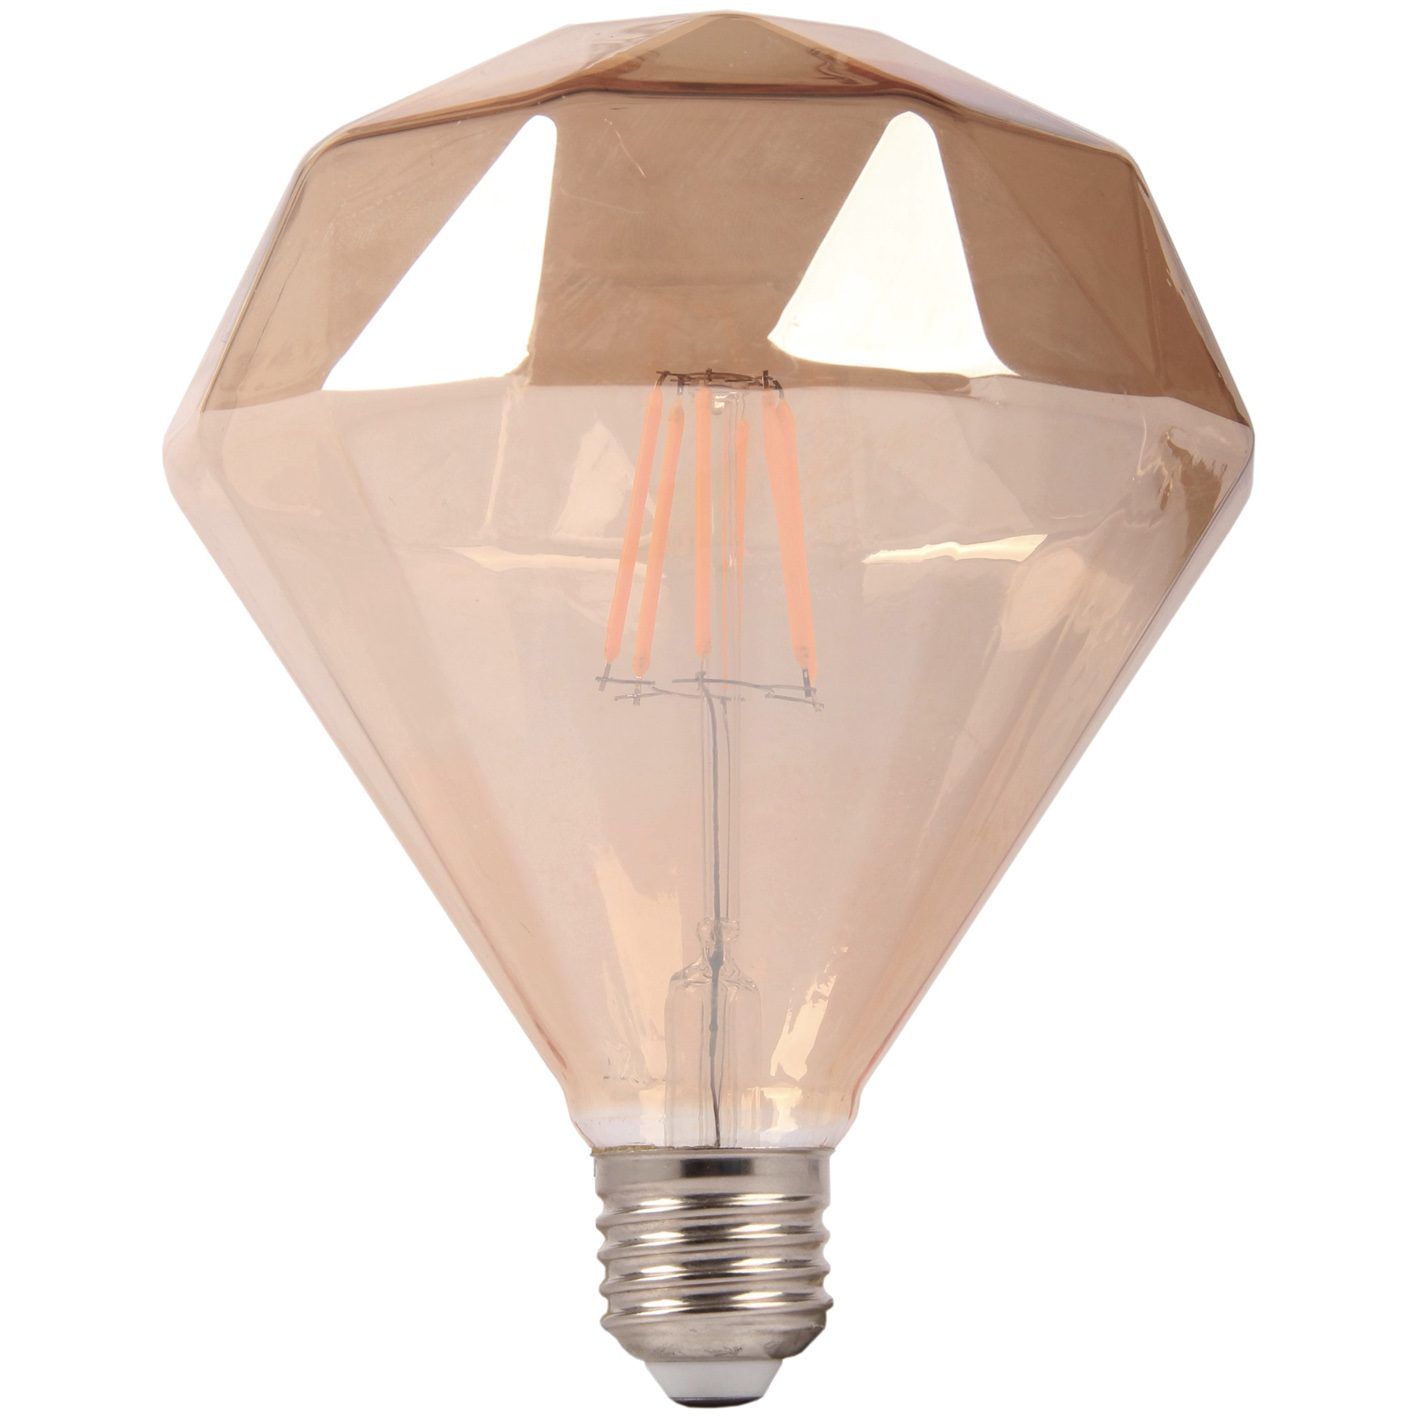 LED bulb filament-E27 6W amber elegant Diamond Lamp